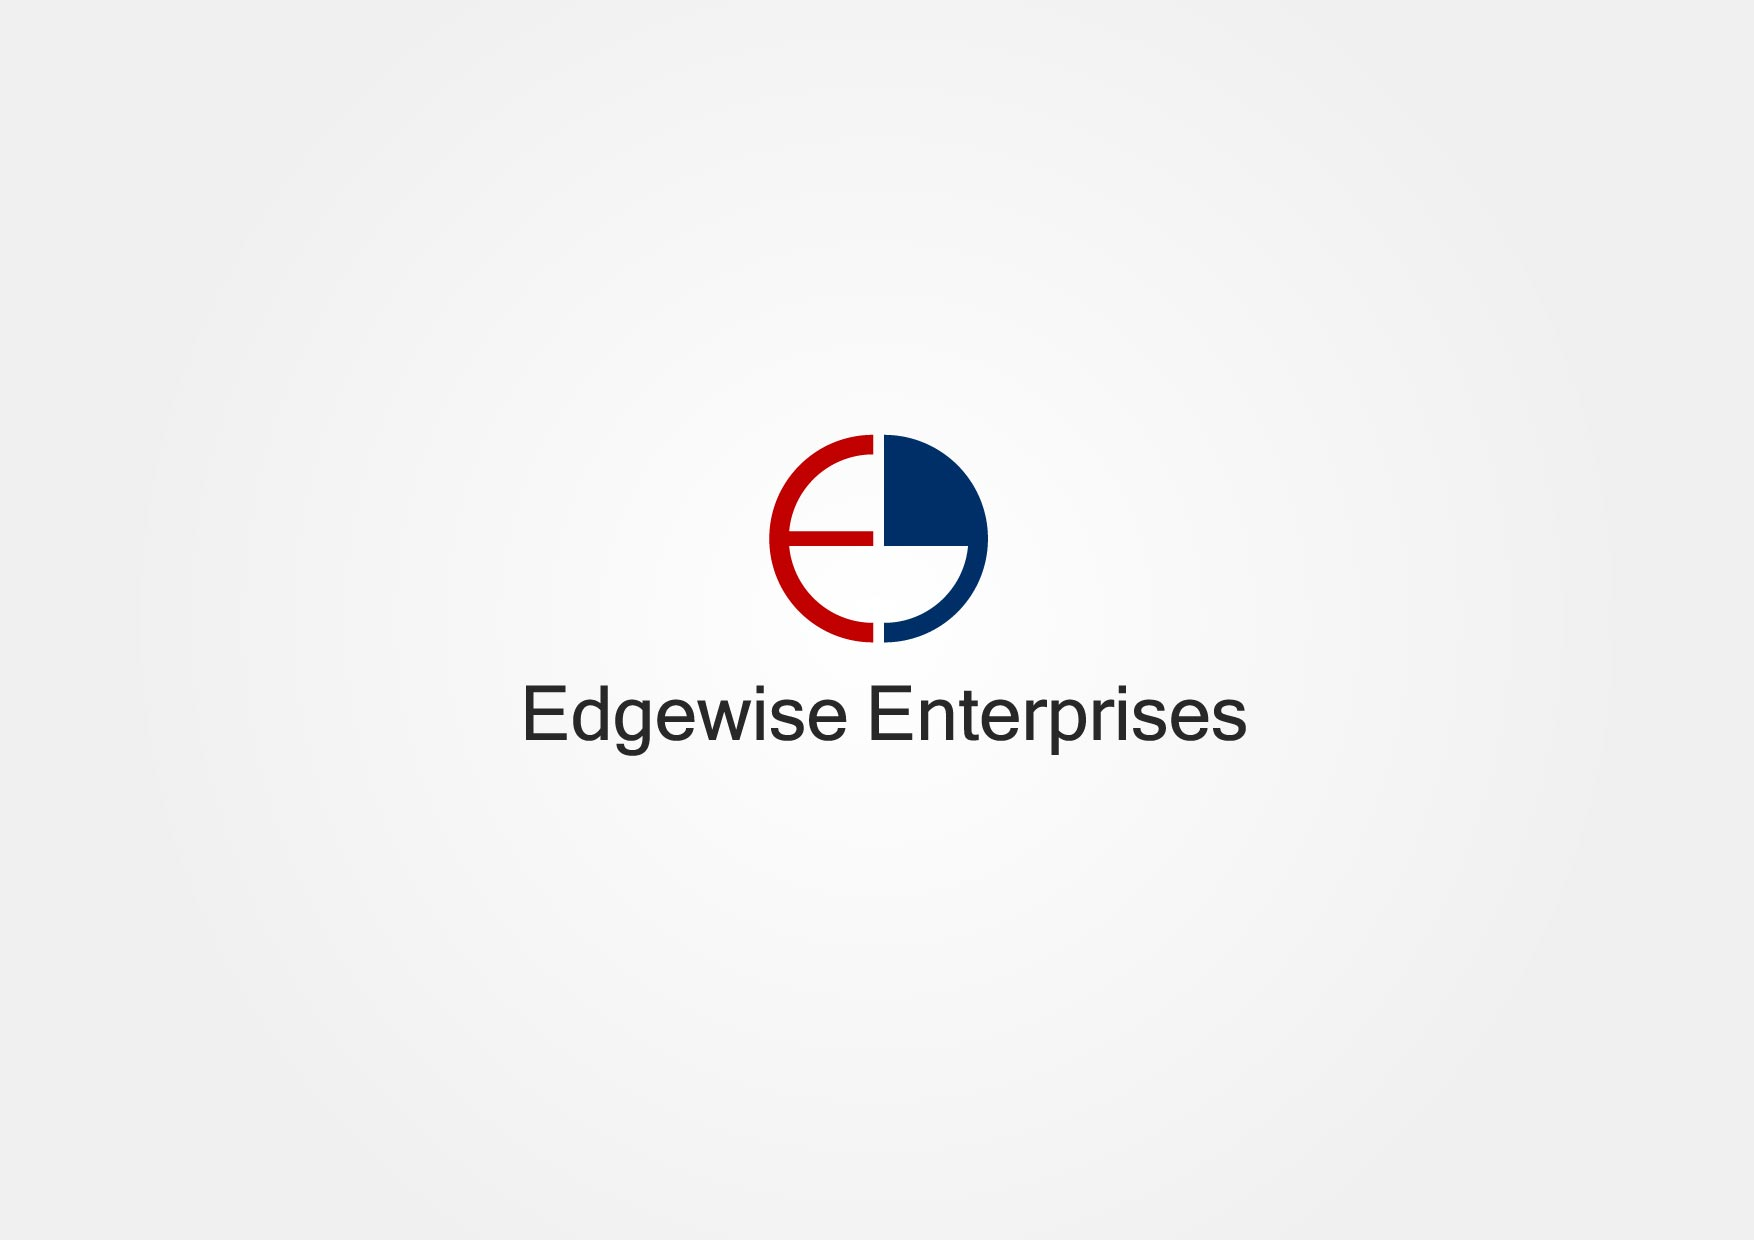 Logo Design by Osi Indra - Entry No. 41 in the Logo Design Contest New Logo Design for Edgewise Enterprises Inc..